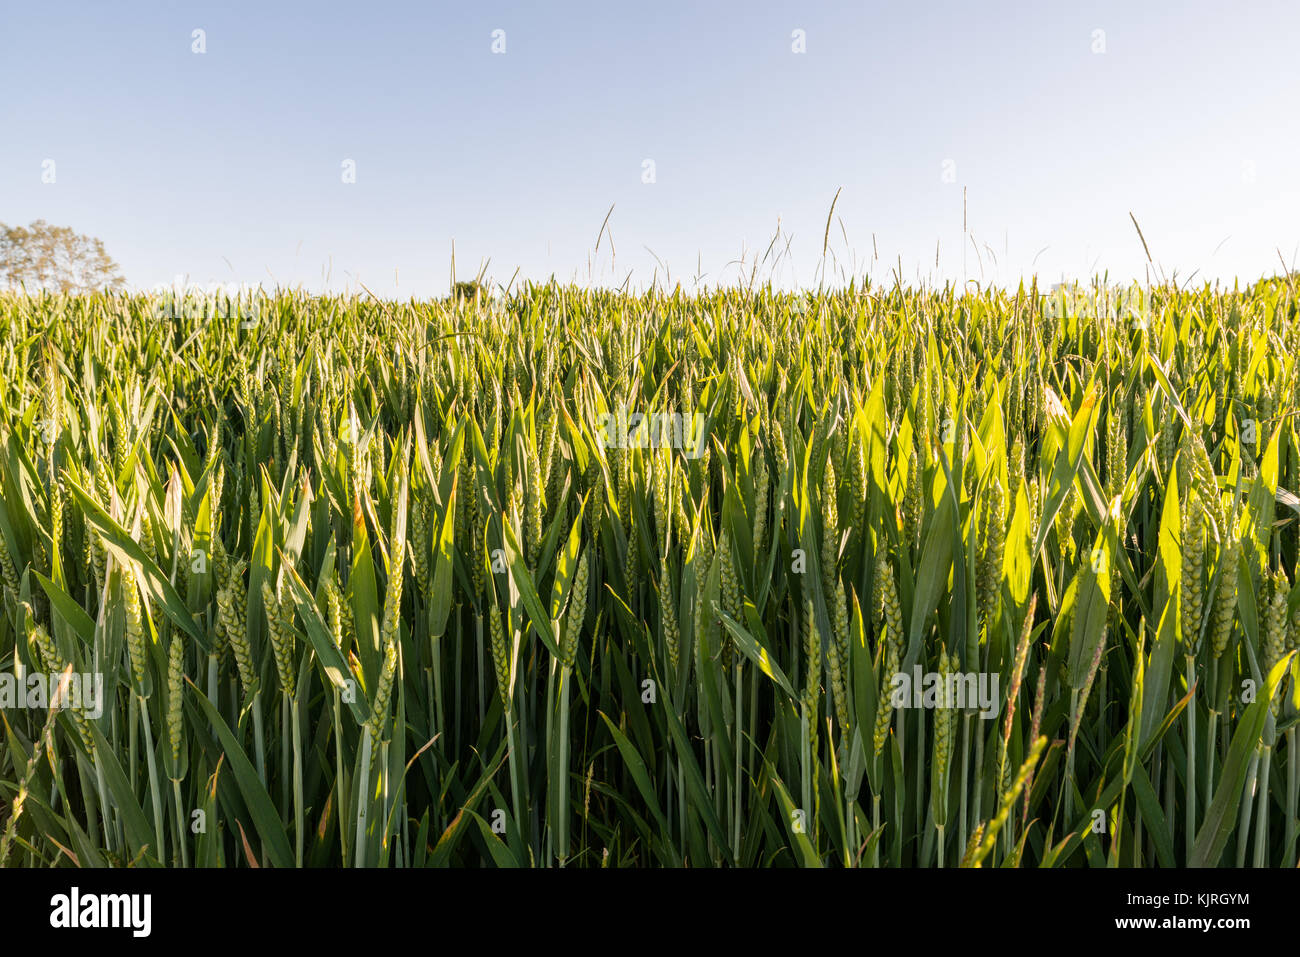 Close up of a wheat field in early summertime - Stock Image